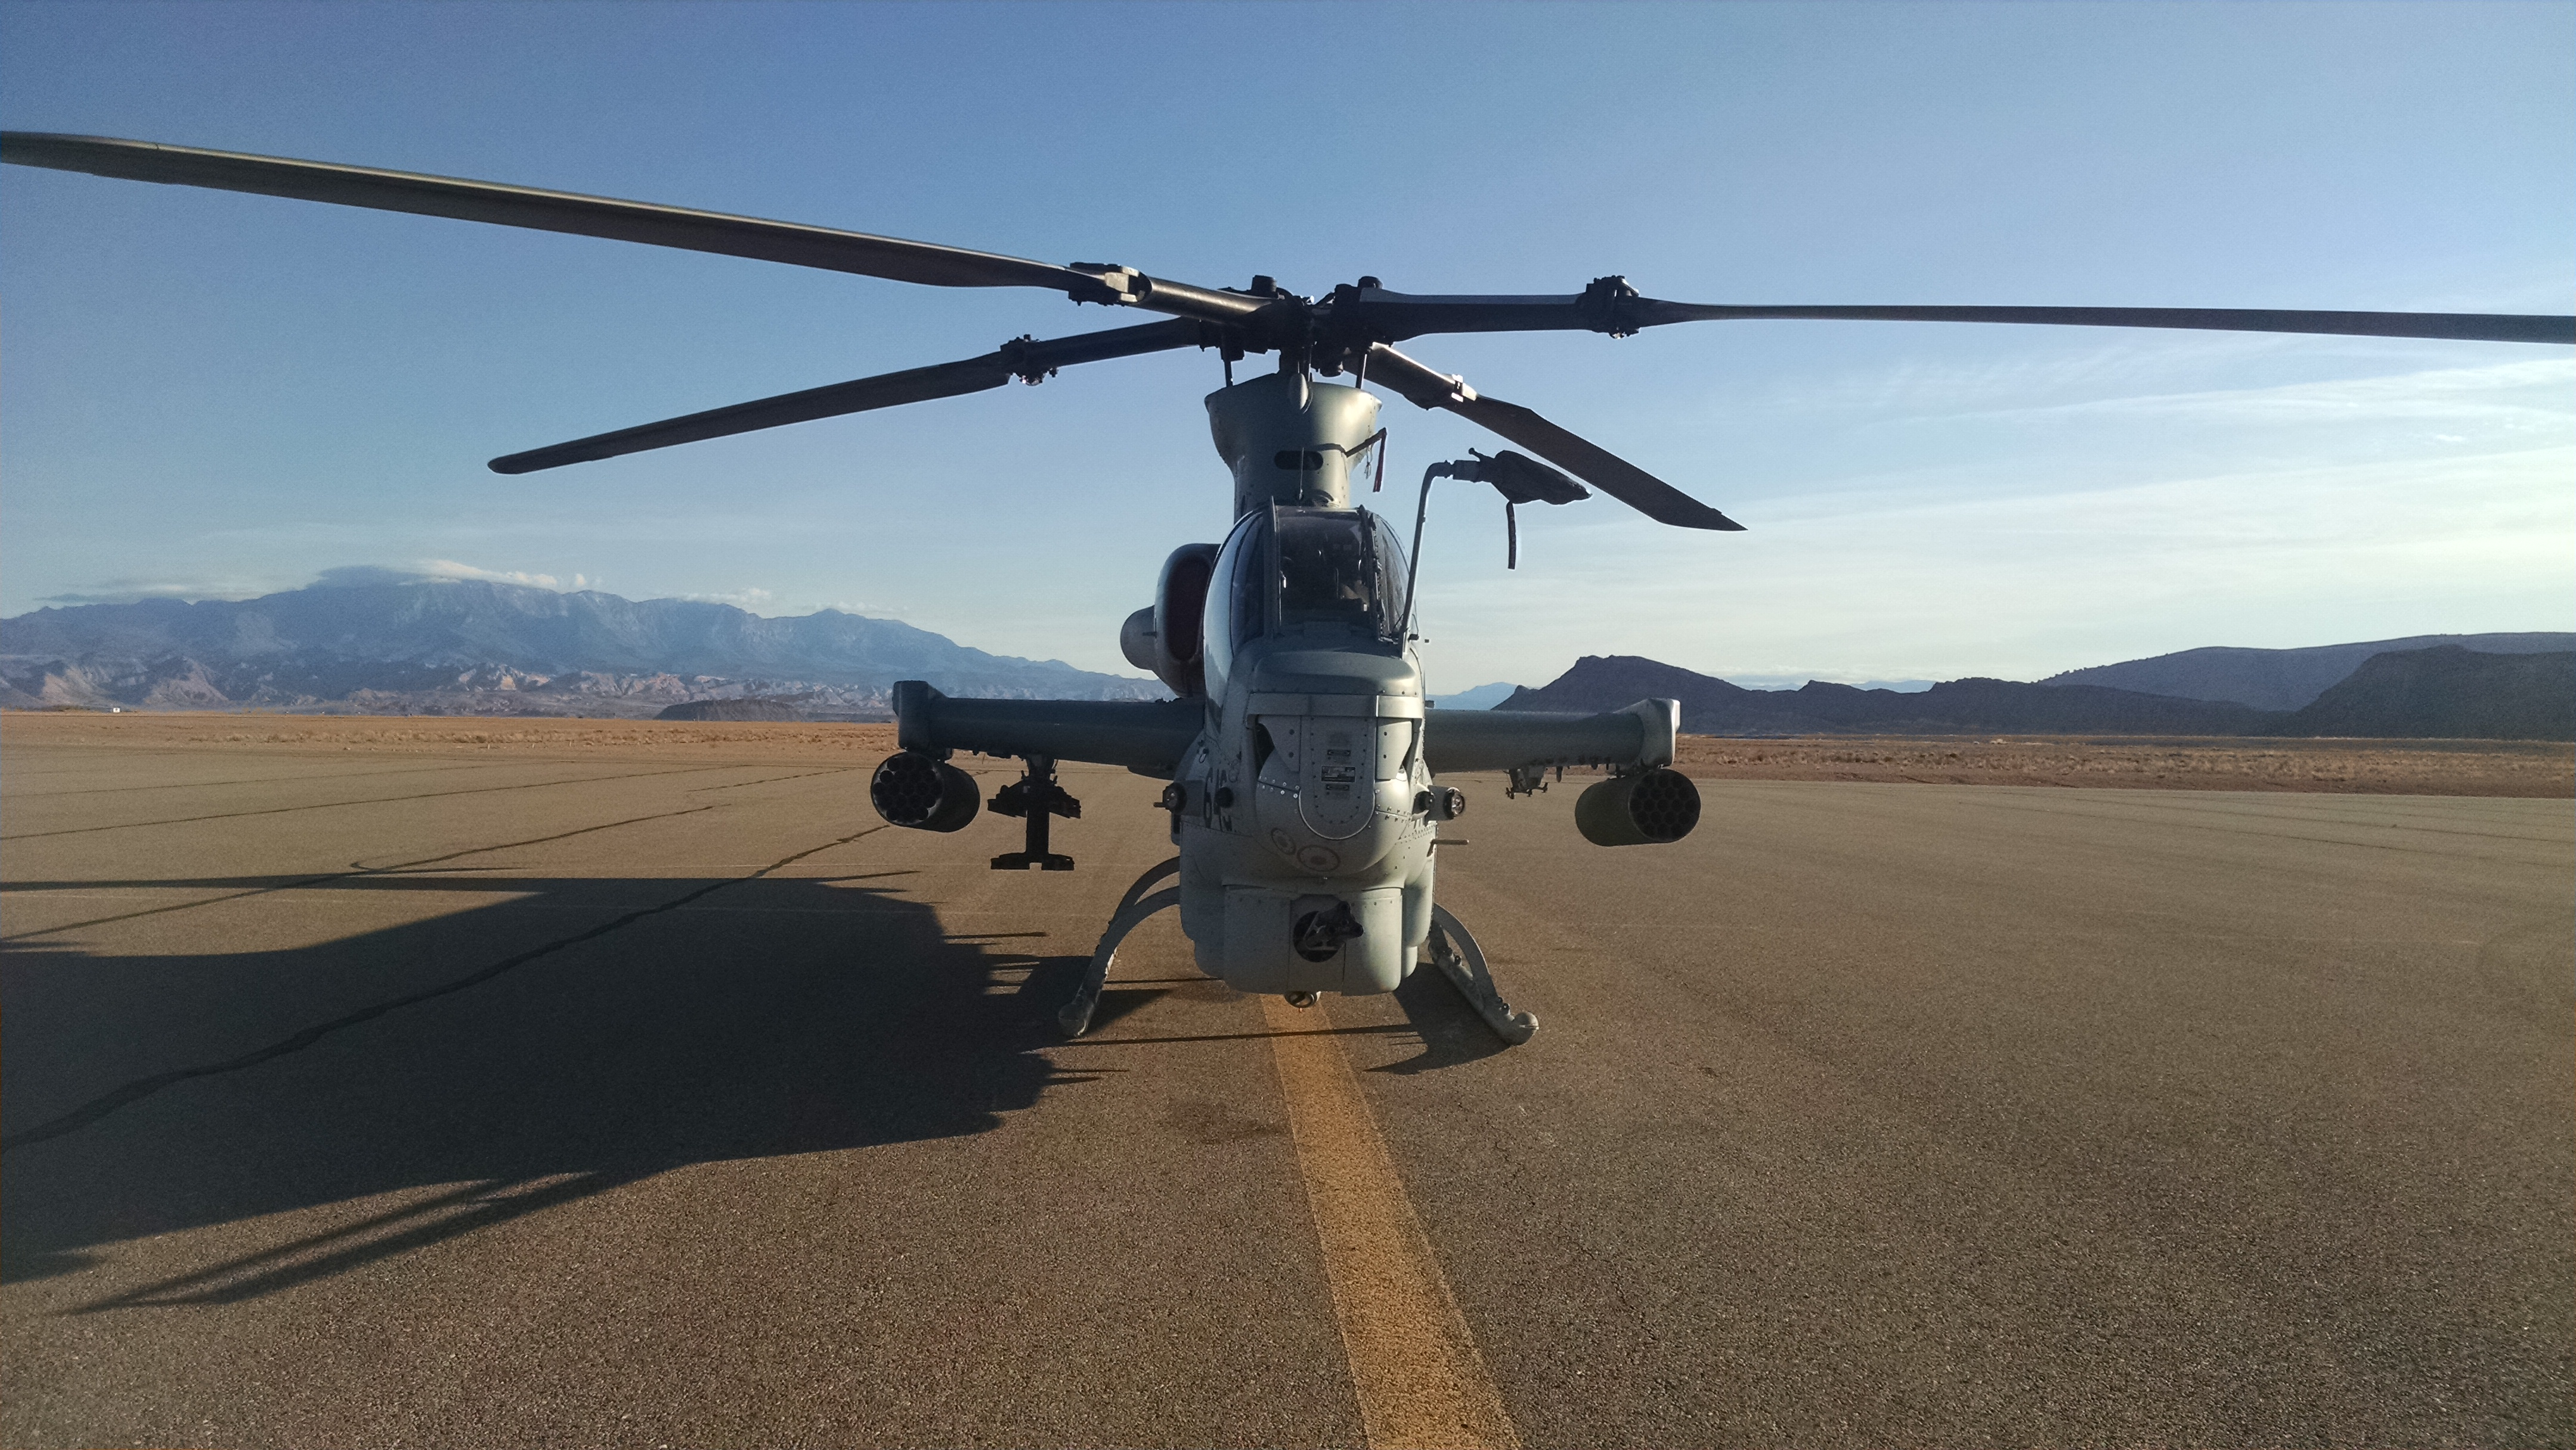 Military helicopter at St. George Regional Airport, Utah, date not specified | Photo courtesy of Brad Kitchen, St. George News